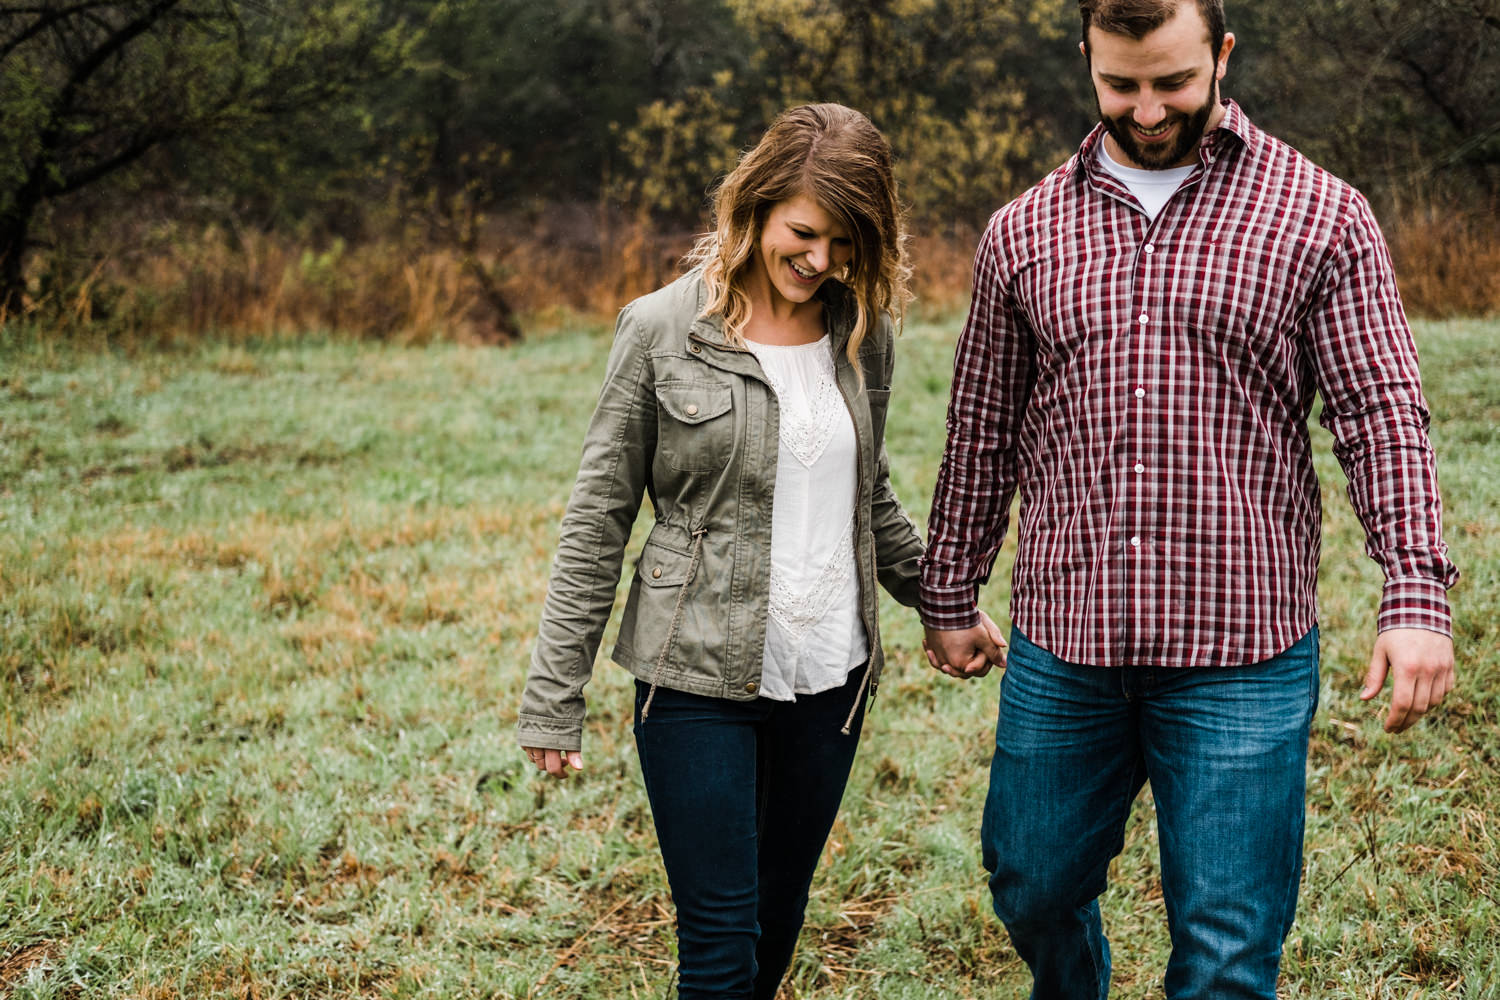 Oklahoma Engagement-Neal Dieker-Oklahoma Wedding Photography-Wichita Mountains-Wichita, Kansas Portrait Photographer-117.jpg